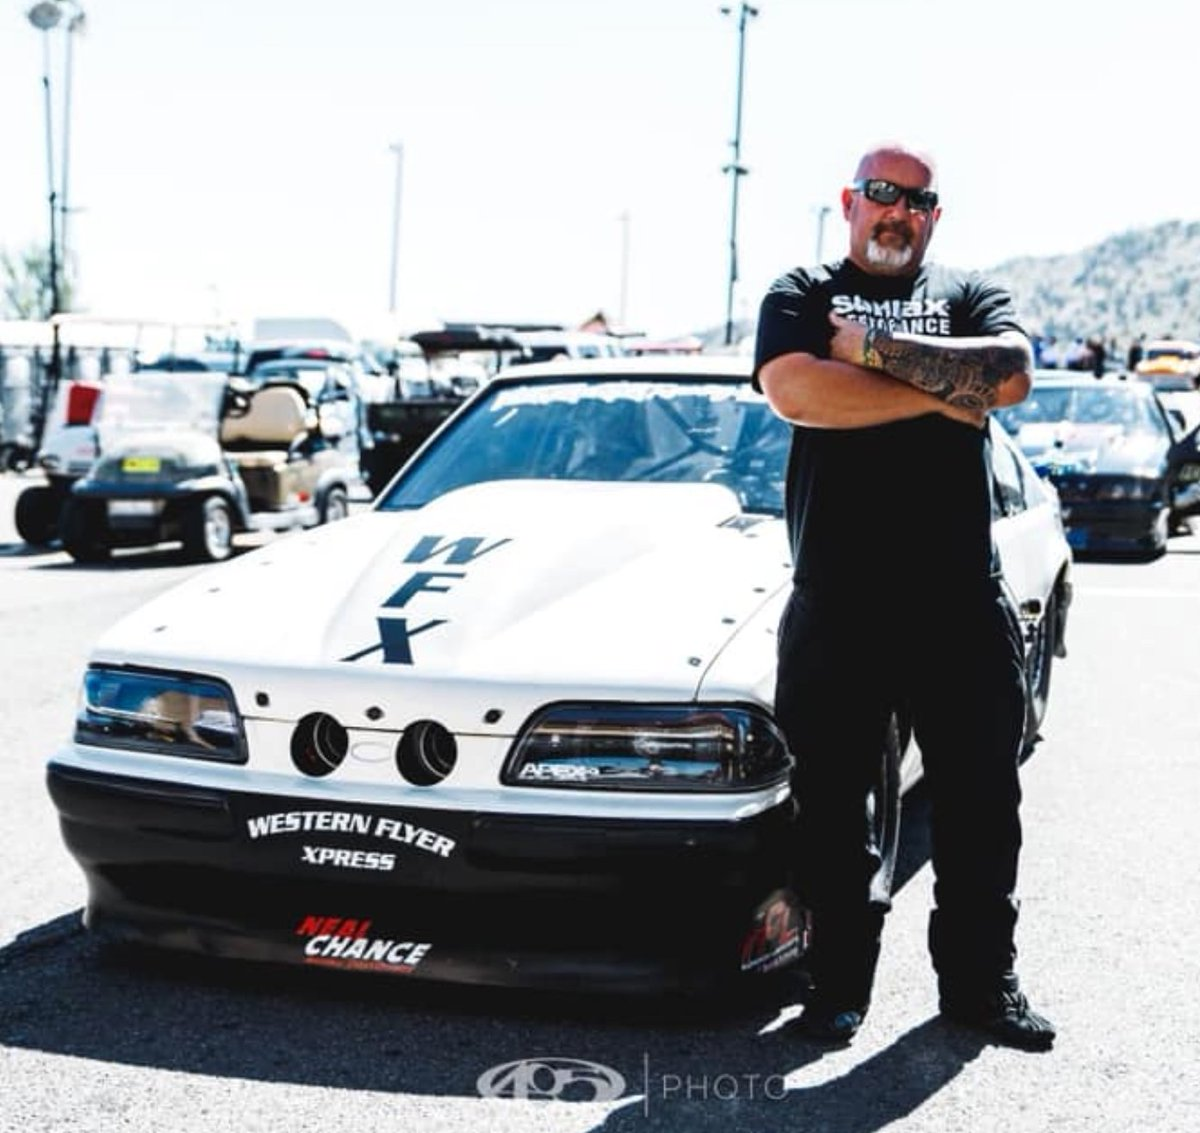 Check out the action in the Mile High City on Street Outlaws tonight on Discovery at 9/8 central! #driveWFX #teamWFX #streetoutlaws #streetoutlawsnoprepkings #streetoutlawschuck #chuckseitsinger #streetracing #Discovery